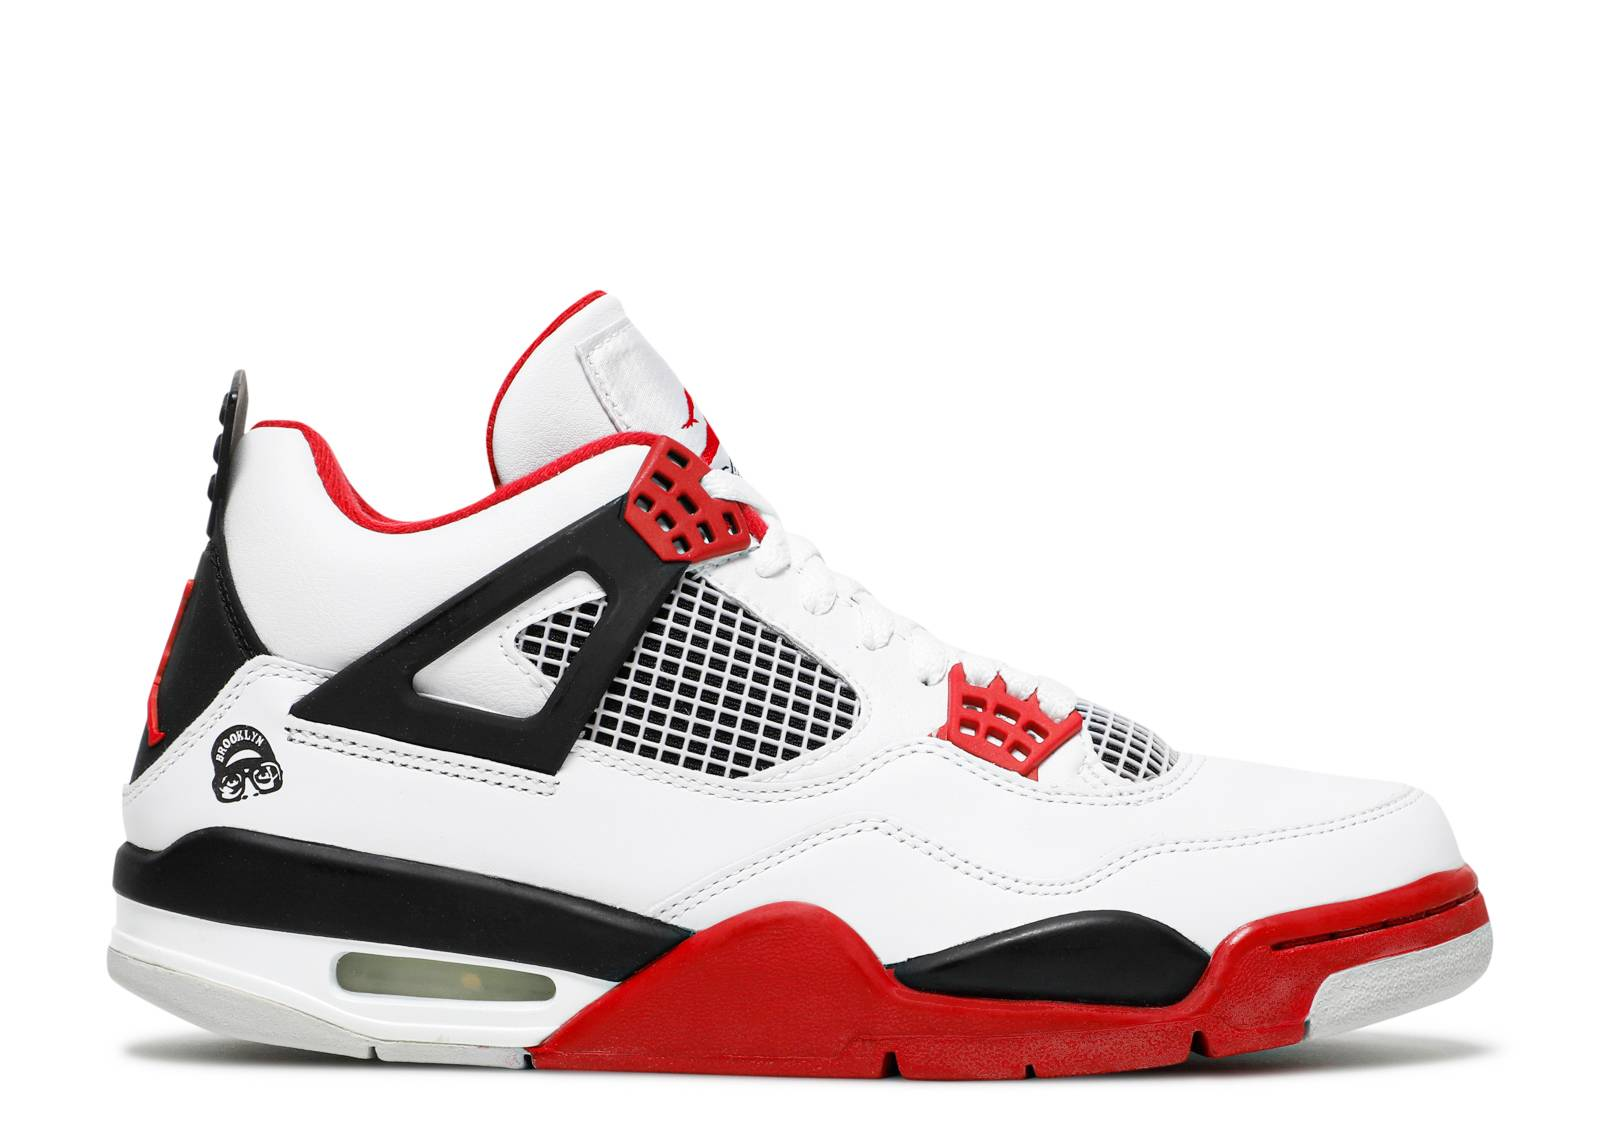 a2be2af4afb Air Jordan 4 Retro